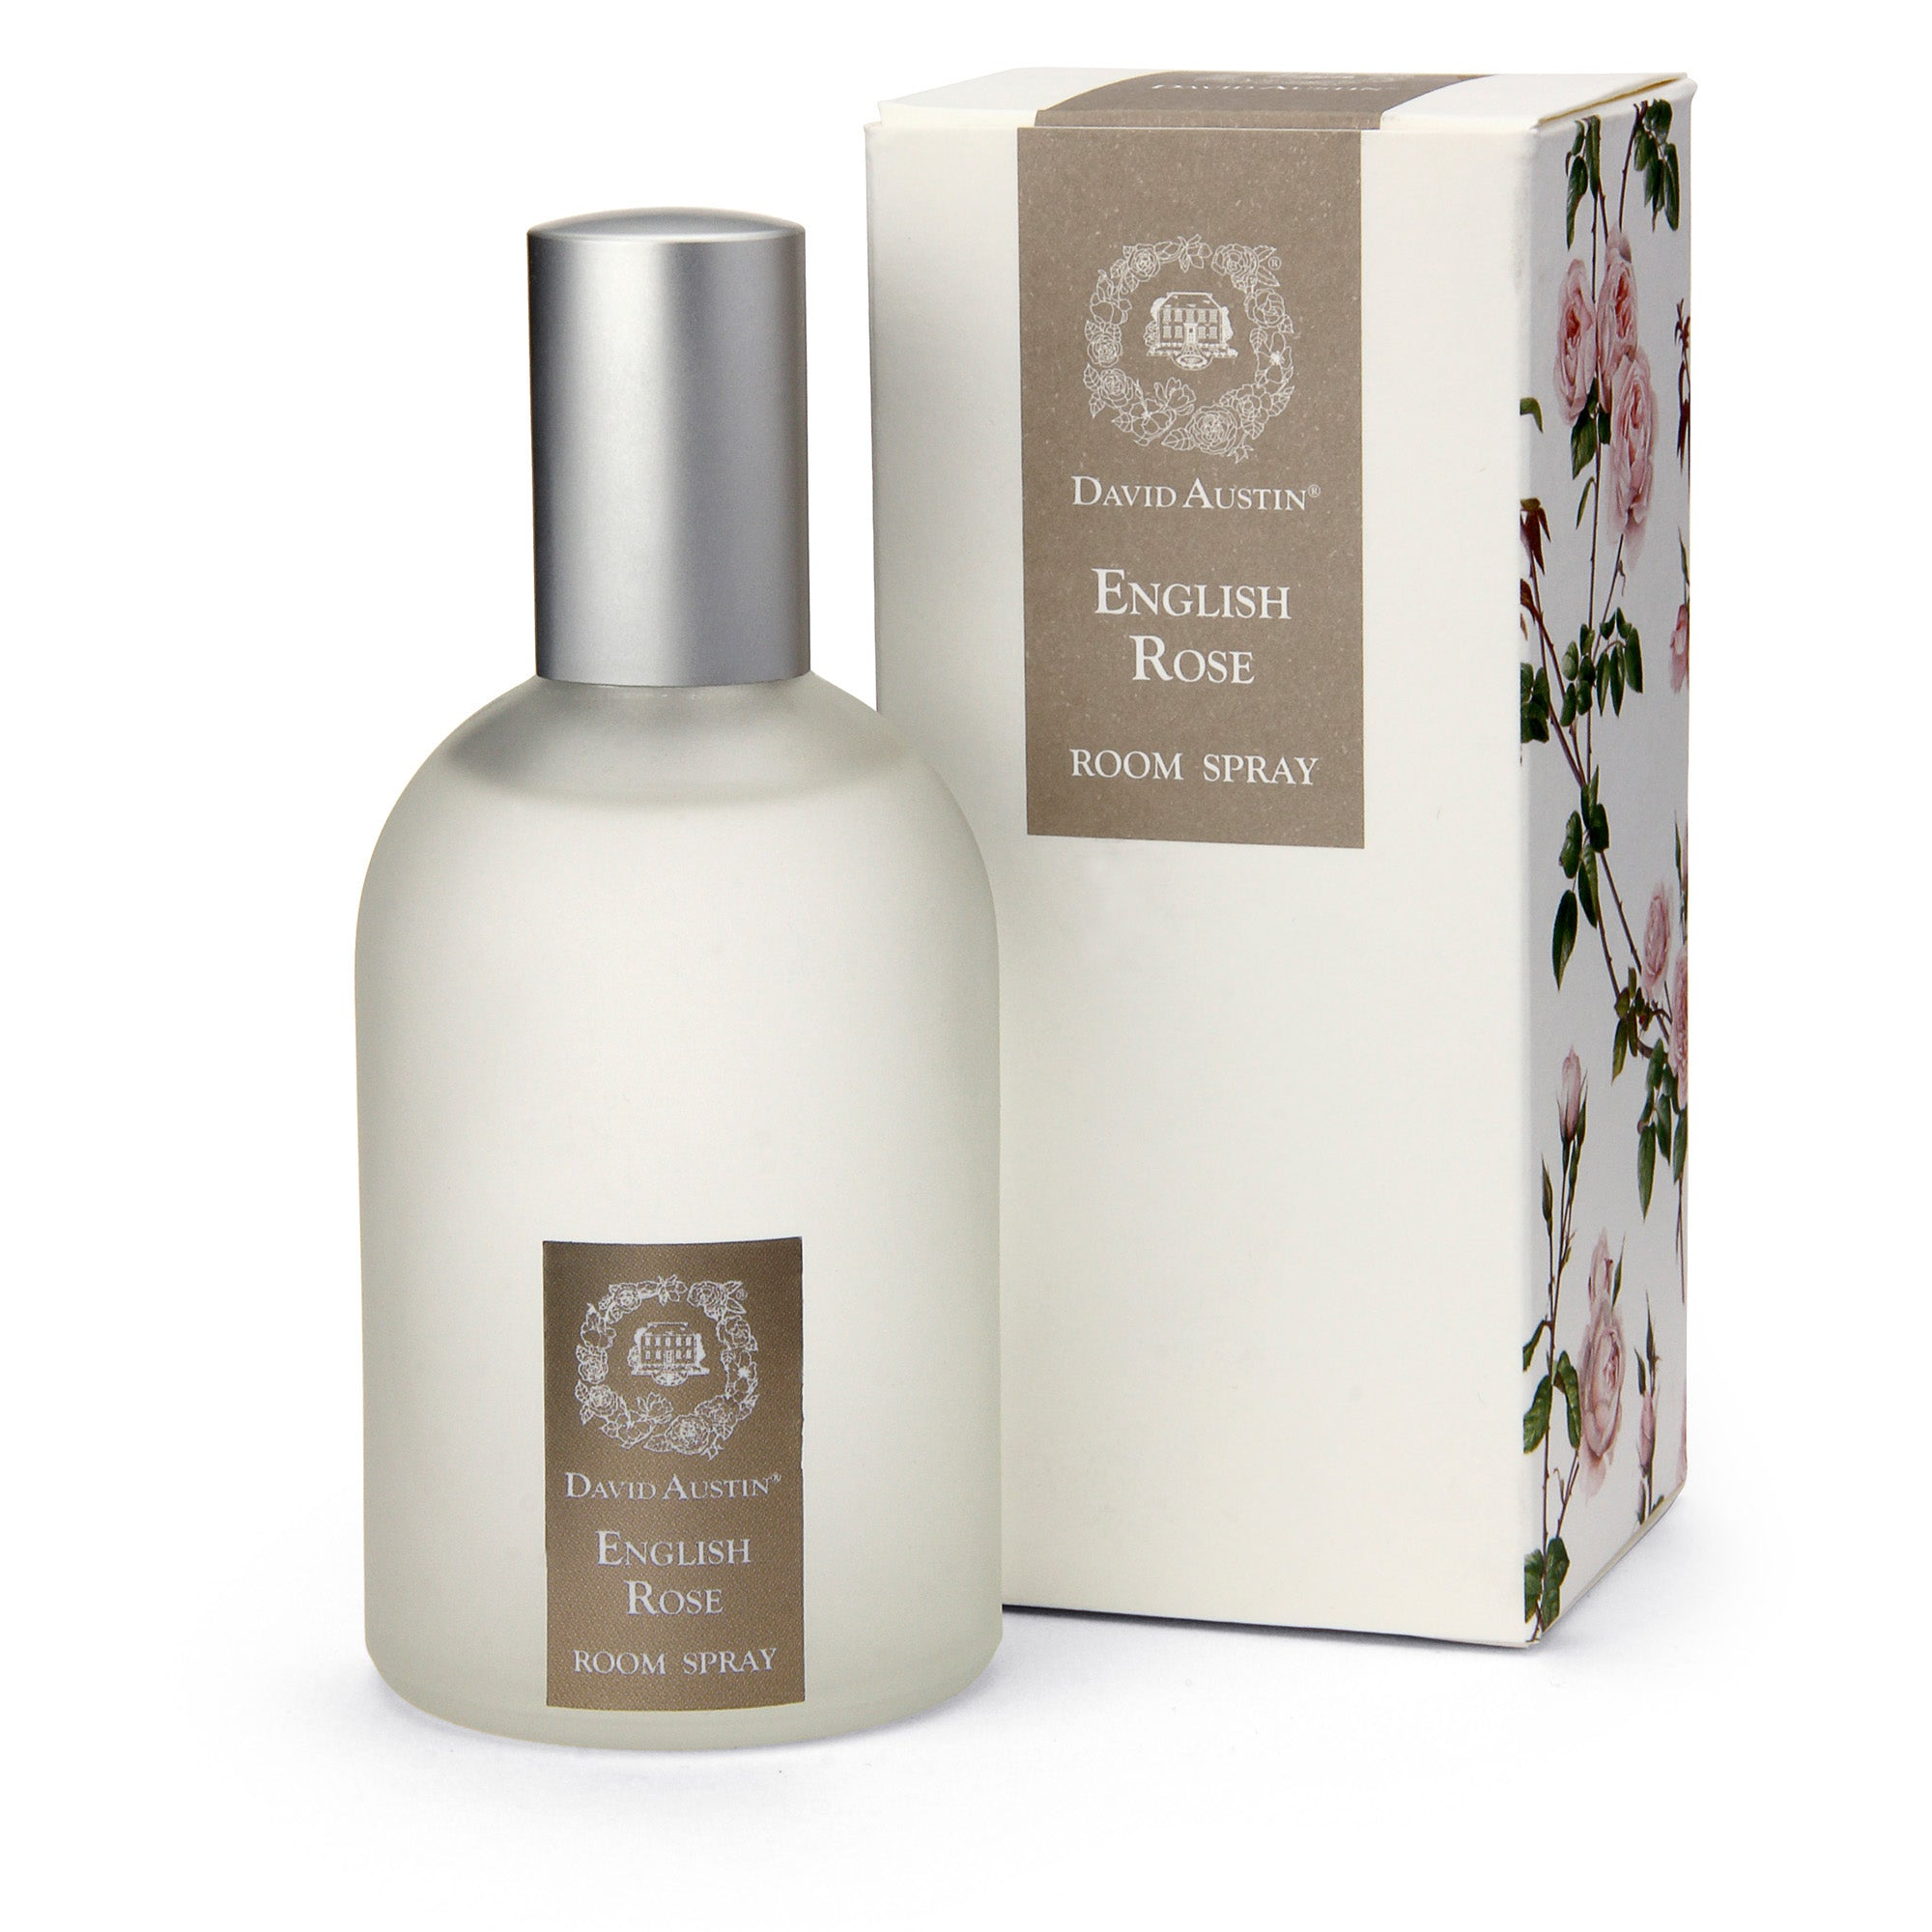 English Rose Room Spray Home Fragrance Gifts